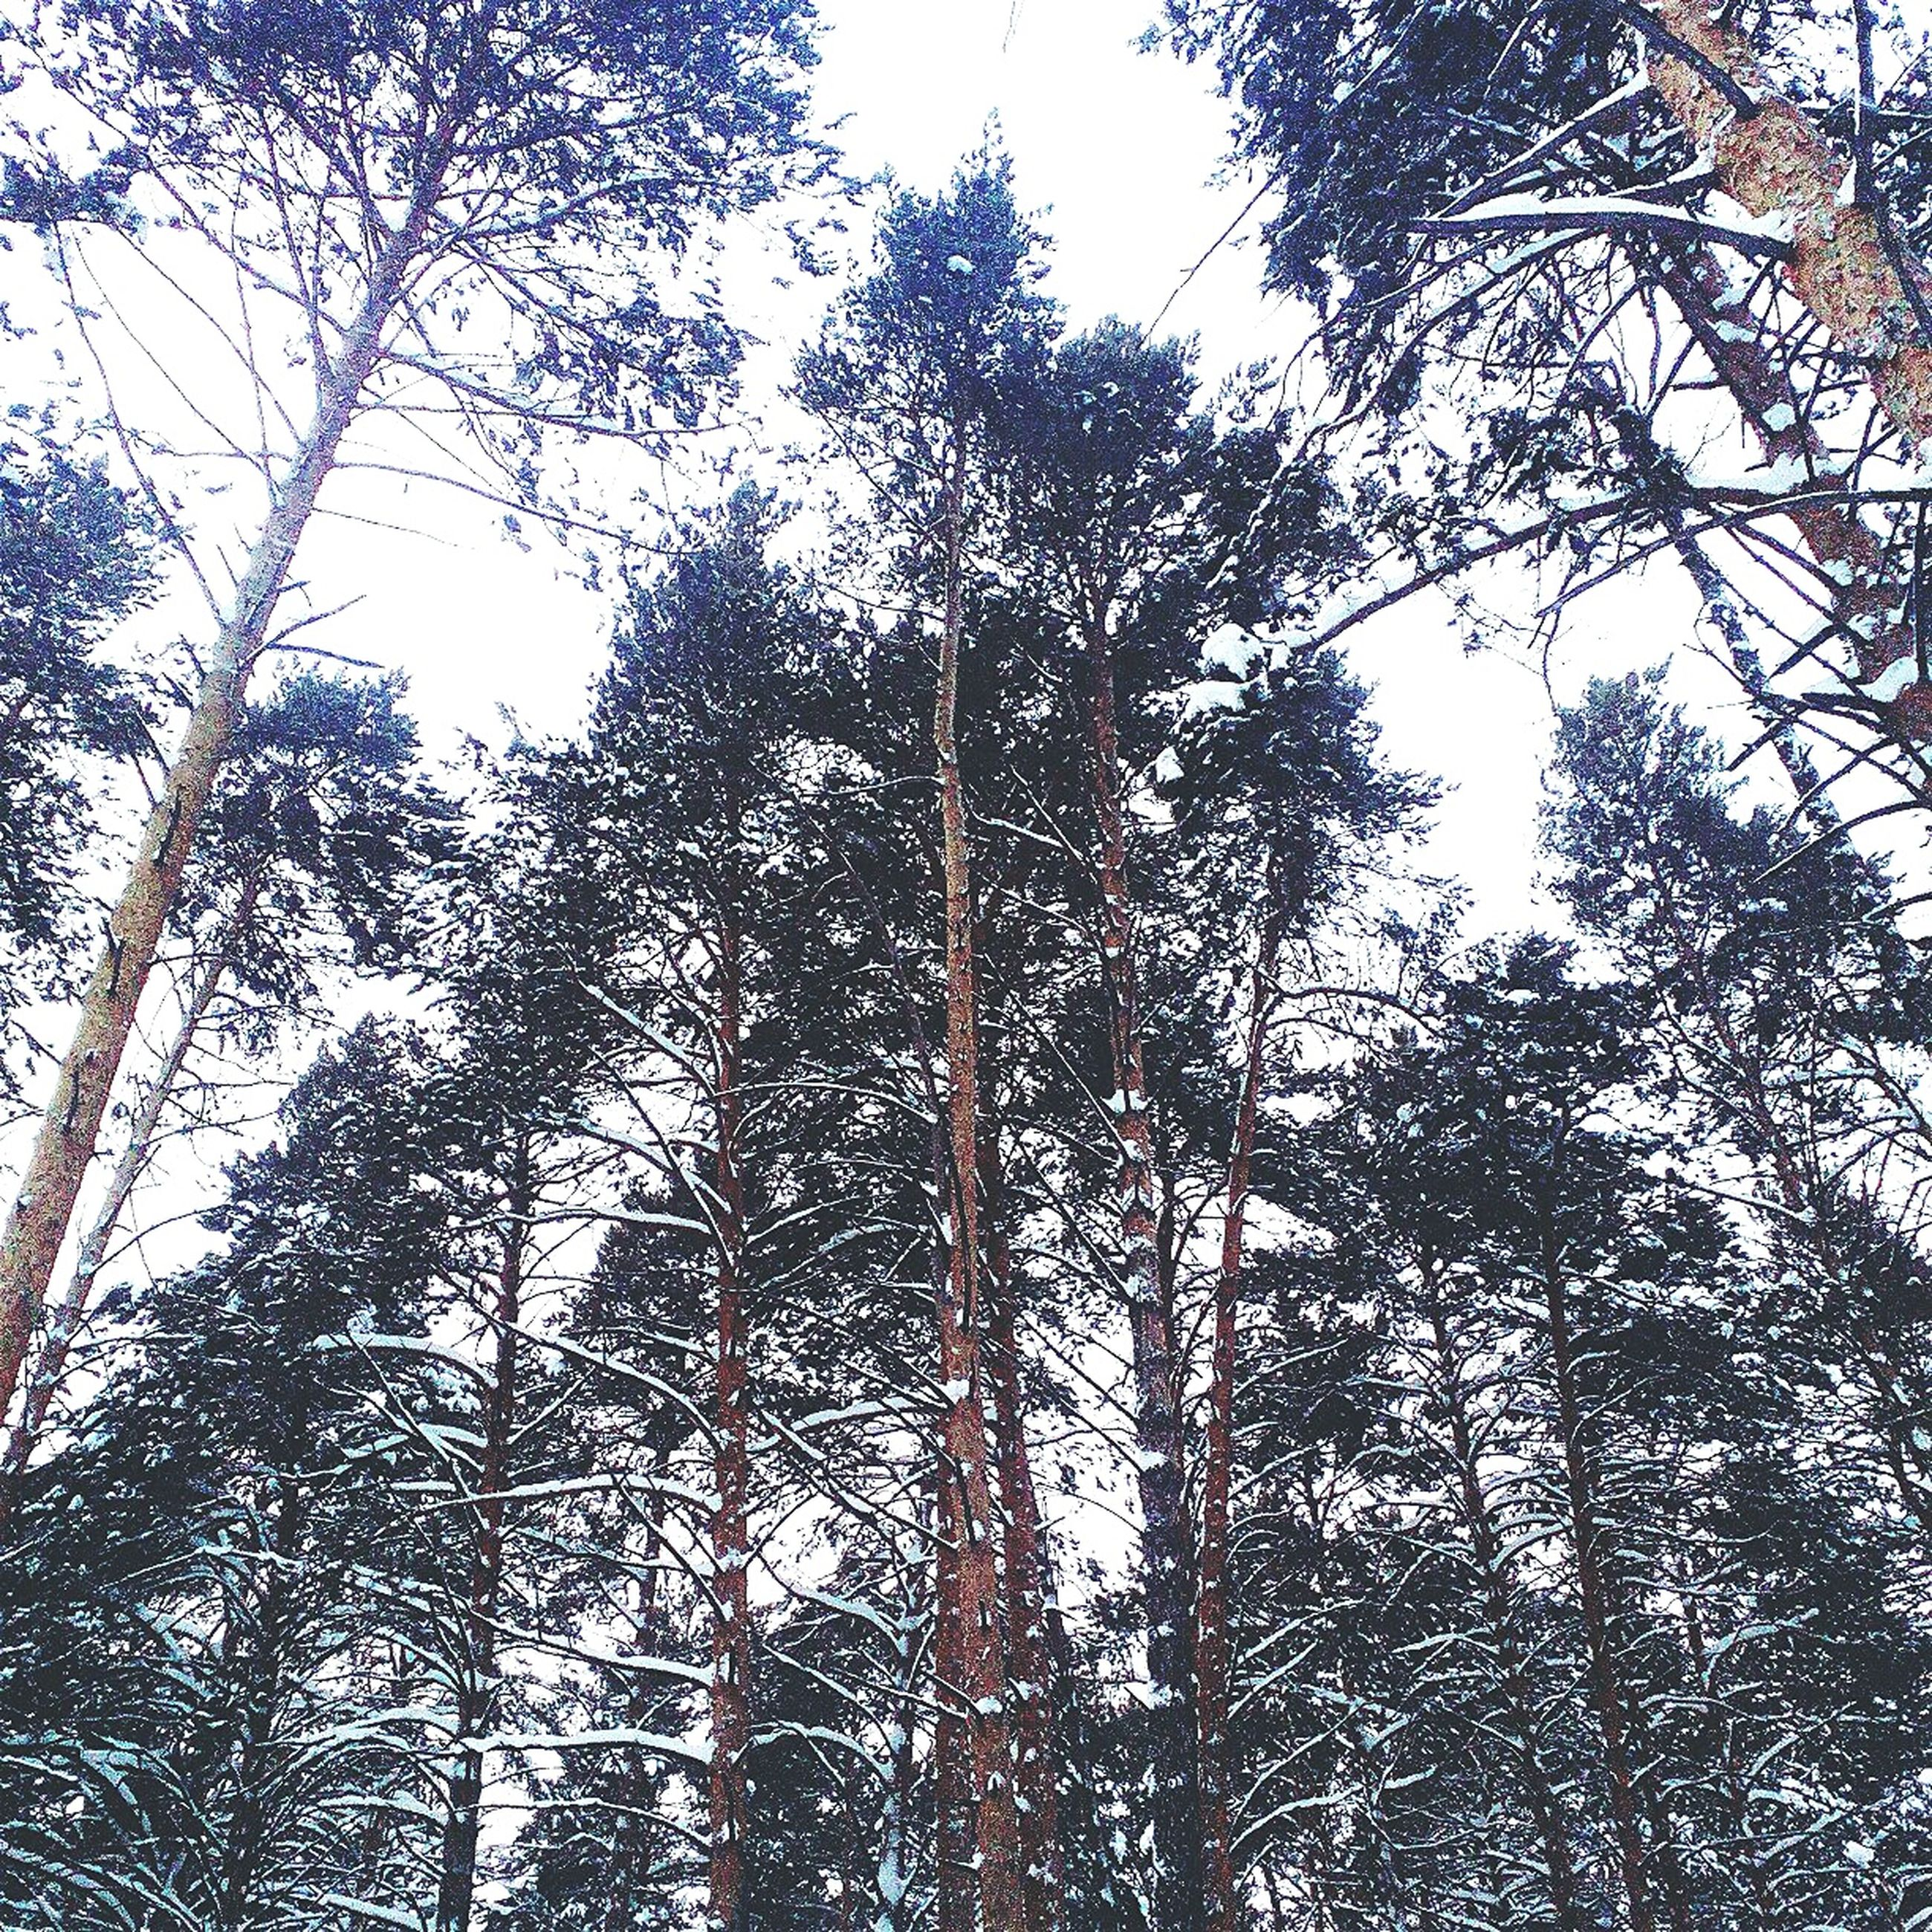 tree, low angle view, forest, tree trunk, growth, nature, no people, day, outdoors, branch, beauty in nature, sky